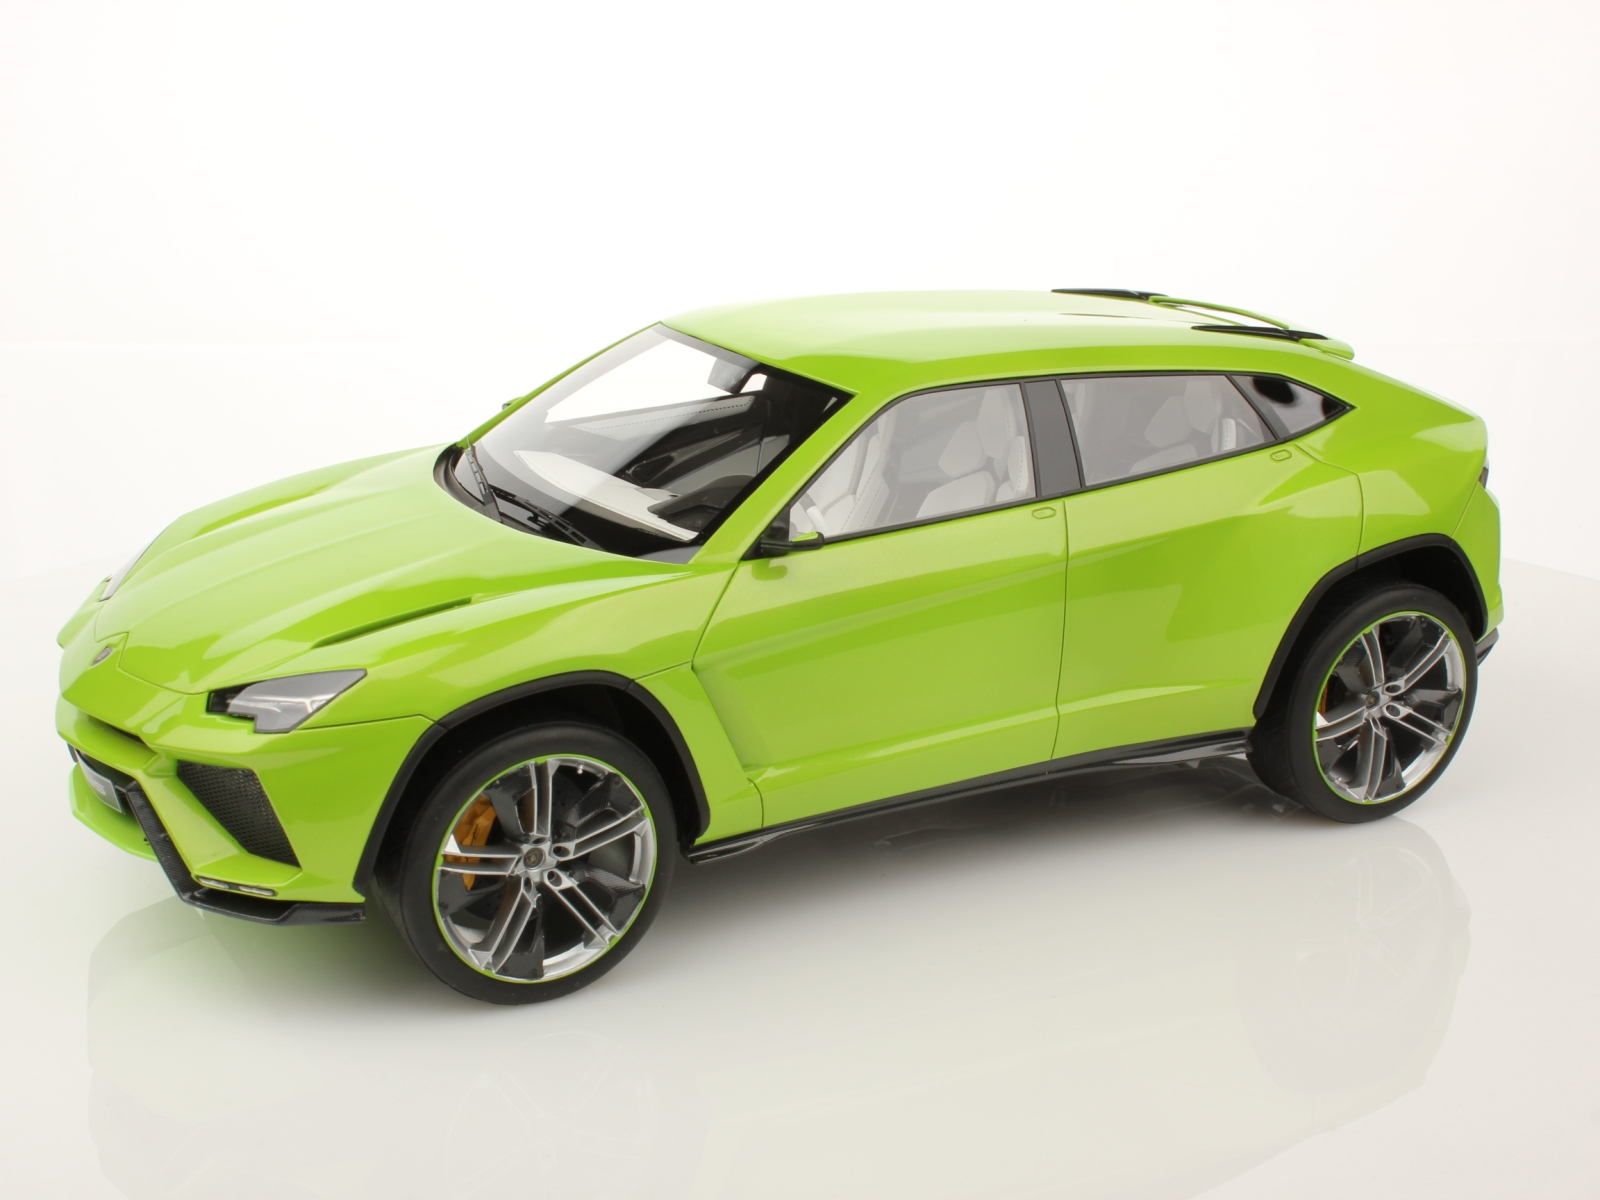 Lamborghini may have given the production green light to the Urus. but ...